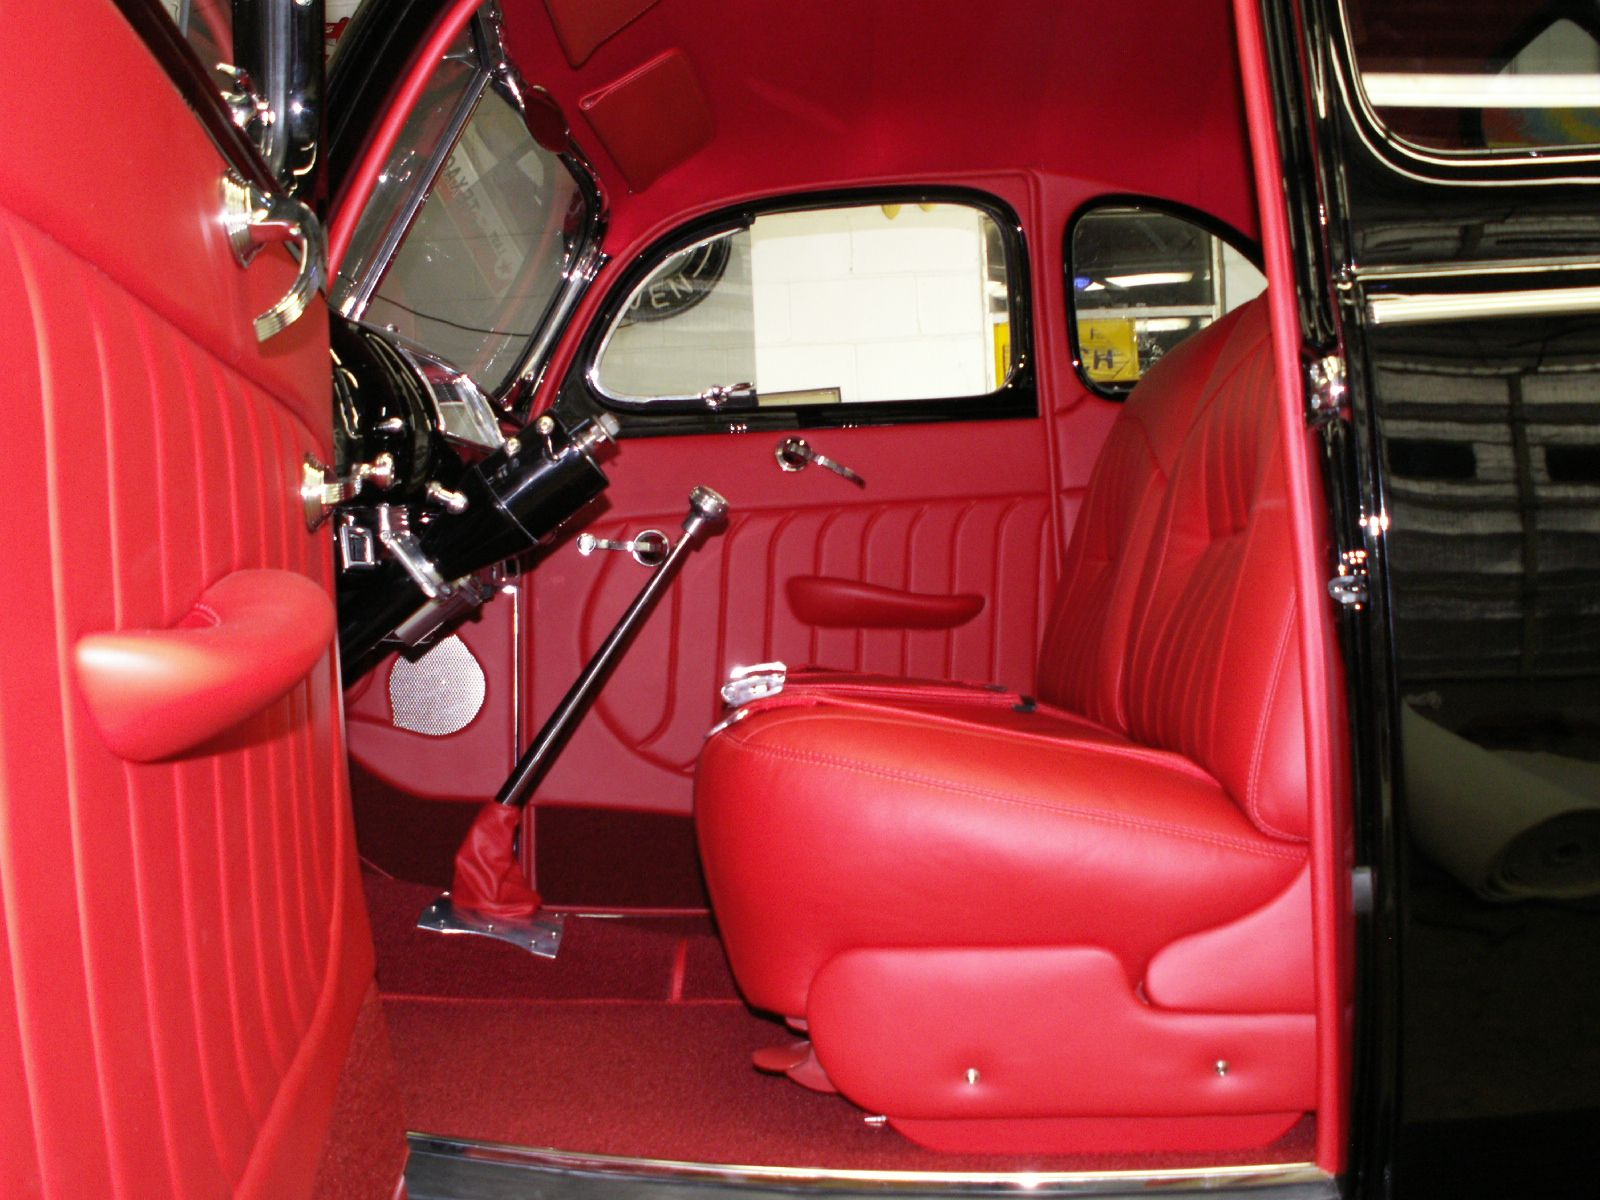 1940 ford coupe custom red leather interior red pepper way pinterest ford car interiors. Black Bedroom Furniture Sets. Home Design Ideas